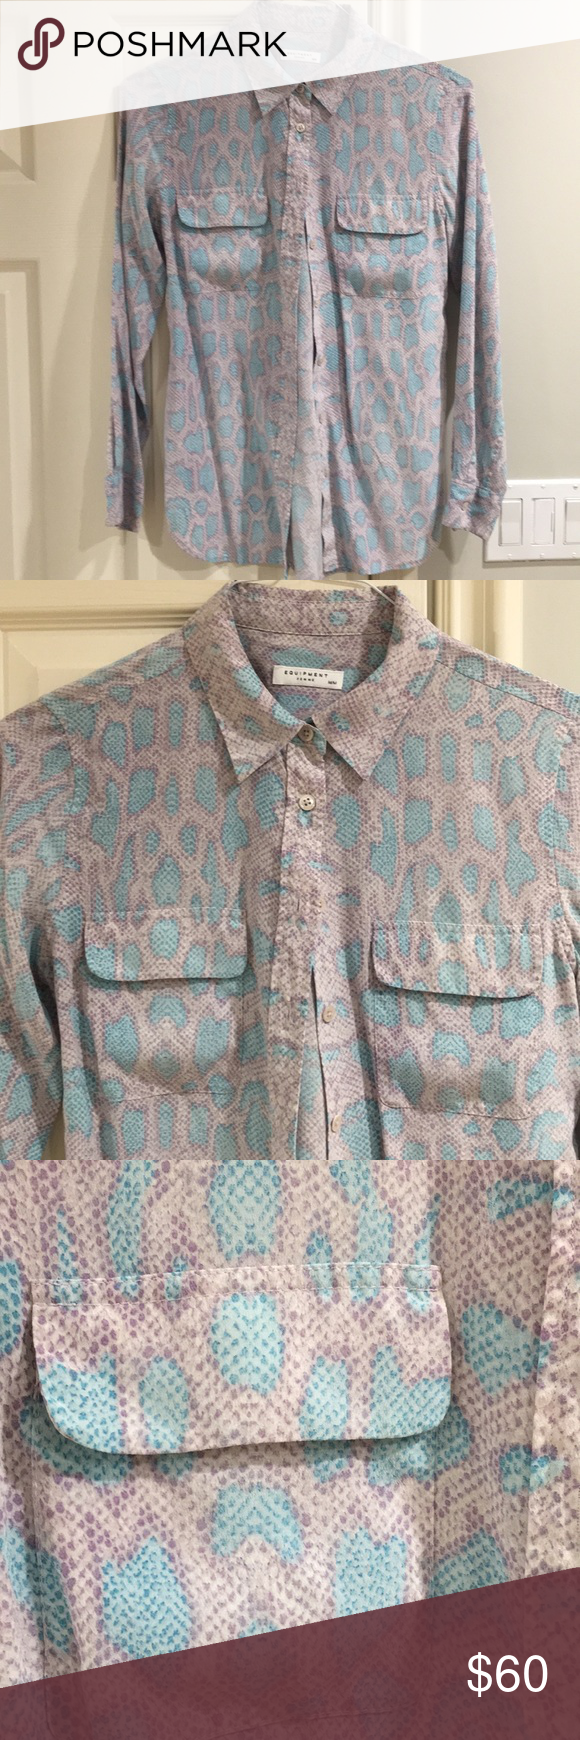 51854cdce035 Equipment silk snake print blouse Hundred percent silk beautiful lights  turquoise and purple blouse. Worn once. Equipment Tops Blouses